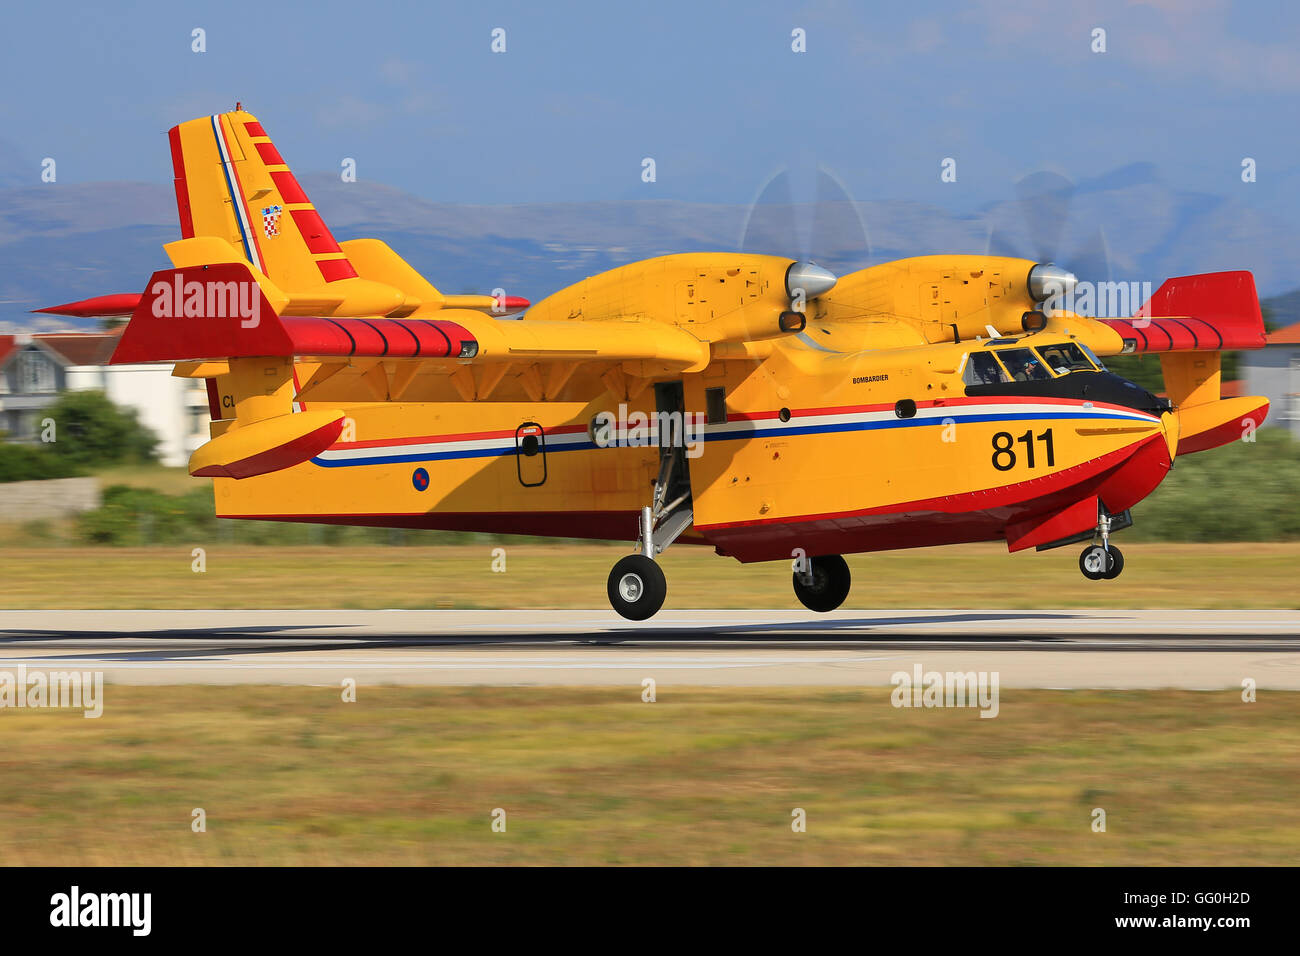 Split/Croatia July 22, 2014: Canadair CL-415 from Croatia - Air Force landing after fighting against a fire at Split - Stock Image